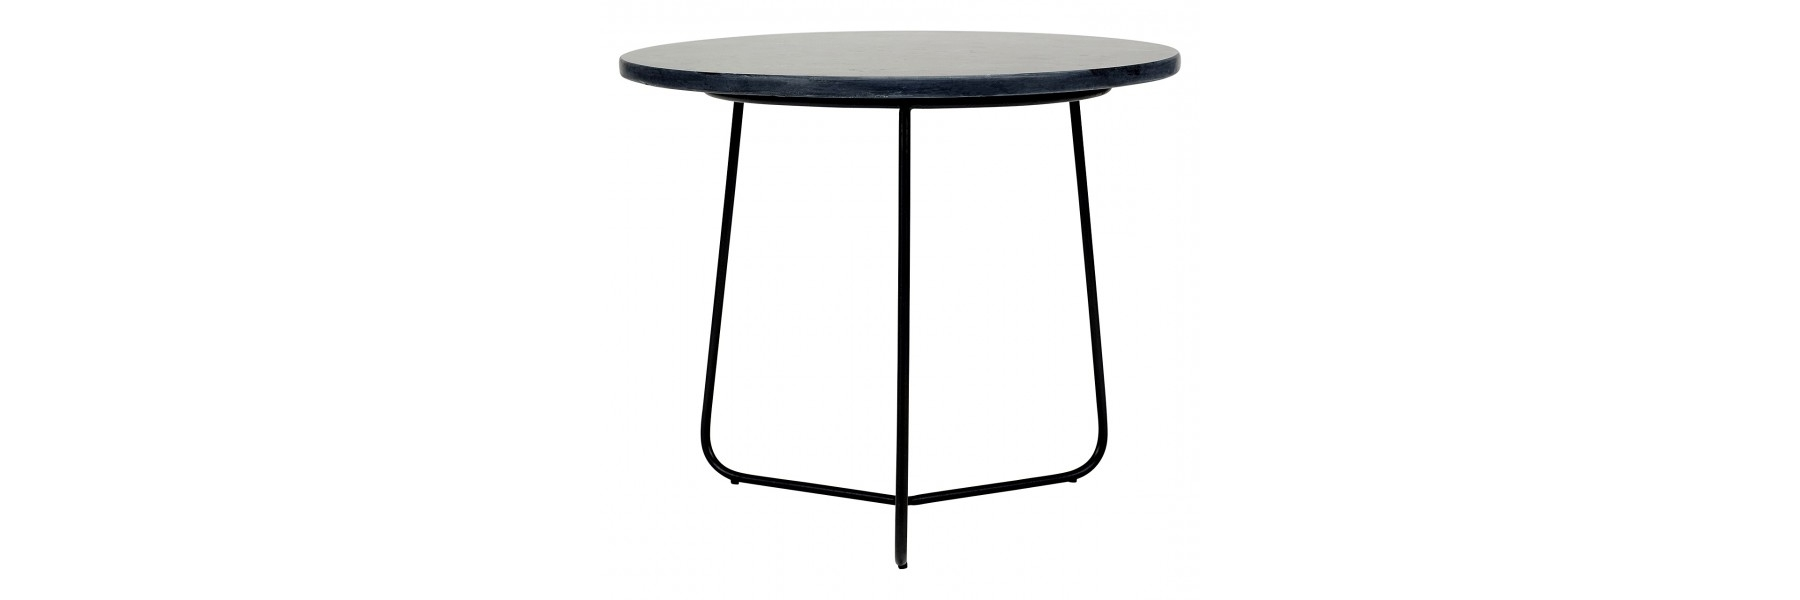 Marble Coffee Table Black Pertaining To Famous Parker Oval Marble Coffee Tables (View 15 of 20)